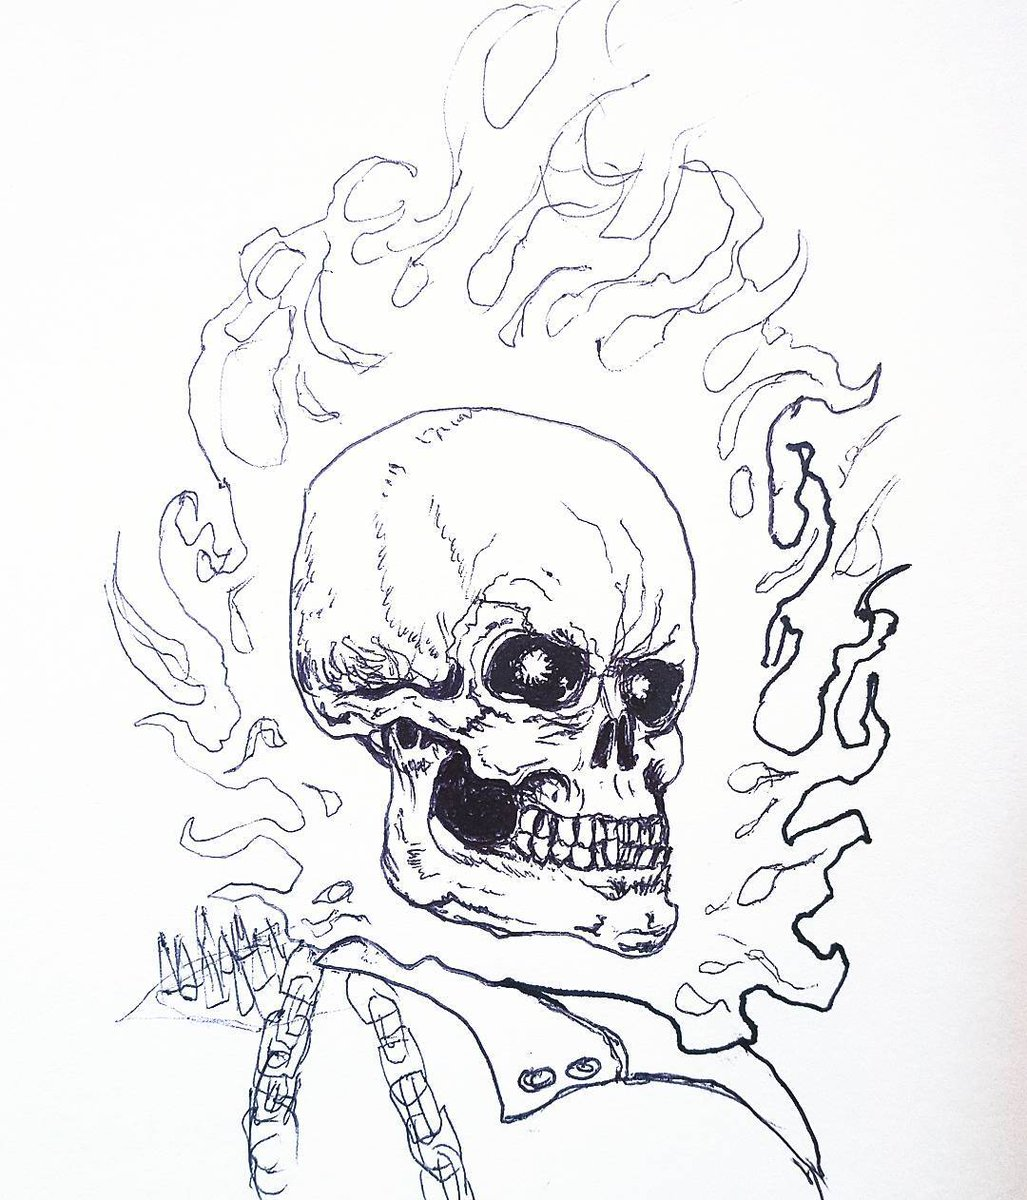 What do you think of this #GhostRider drawing of mine? #illustration #Marvel #SKULL #blackandwhite #patreon https://t.co/DJMsBNMraq